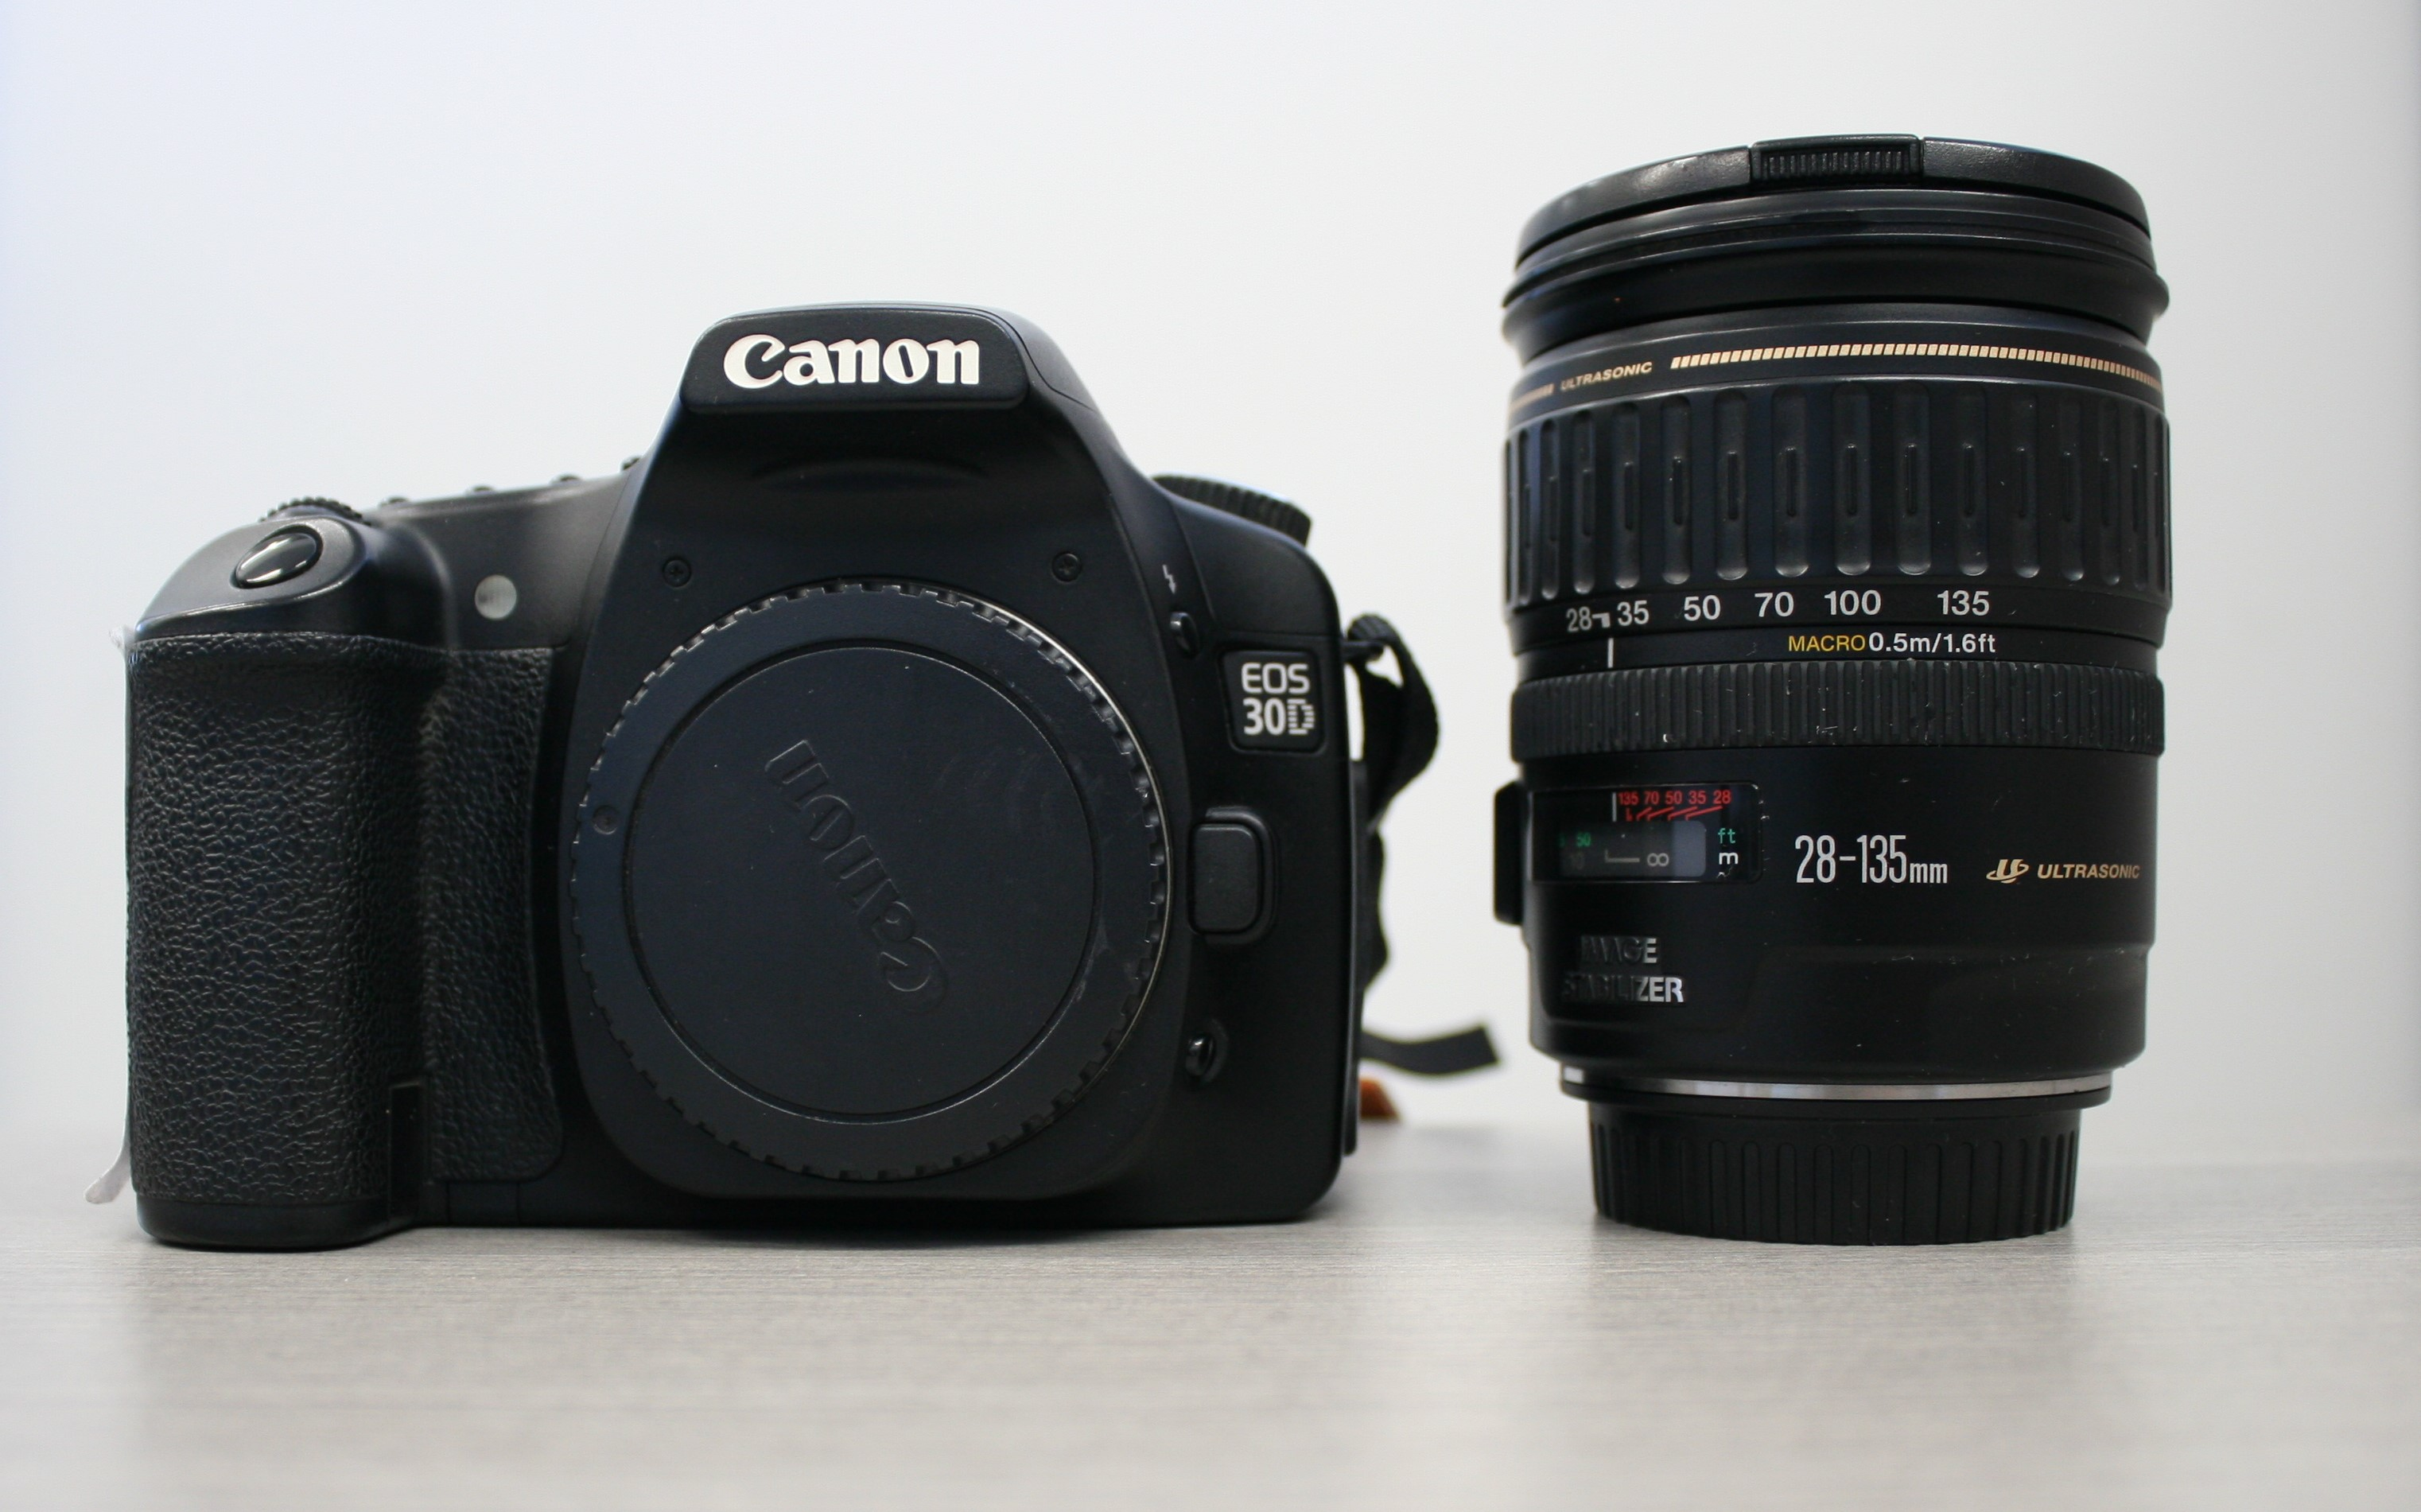 Canon EOS 30 D with 28-135mm lens